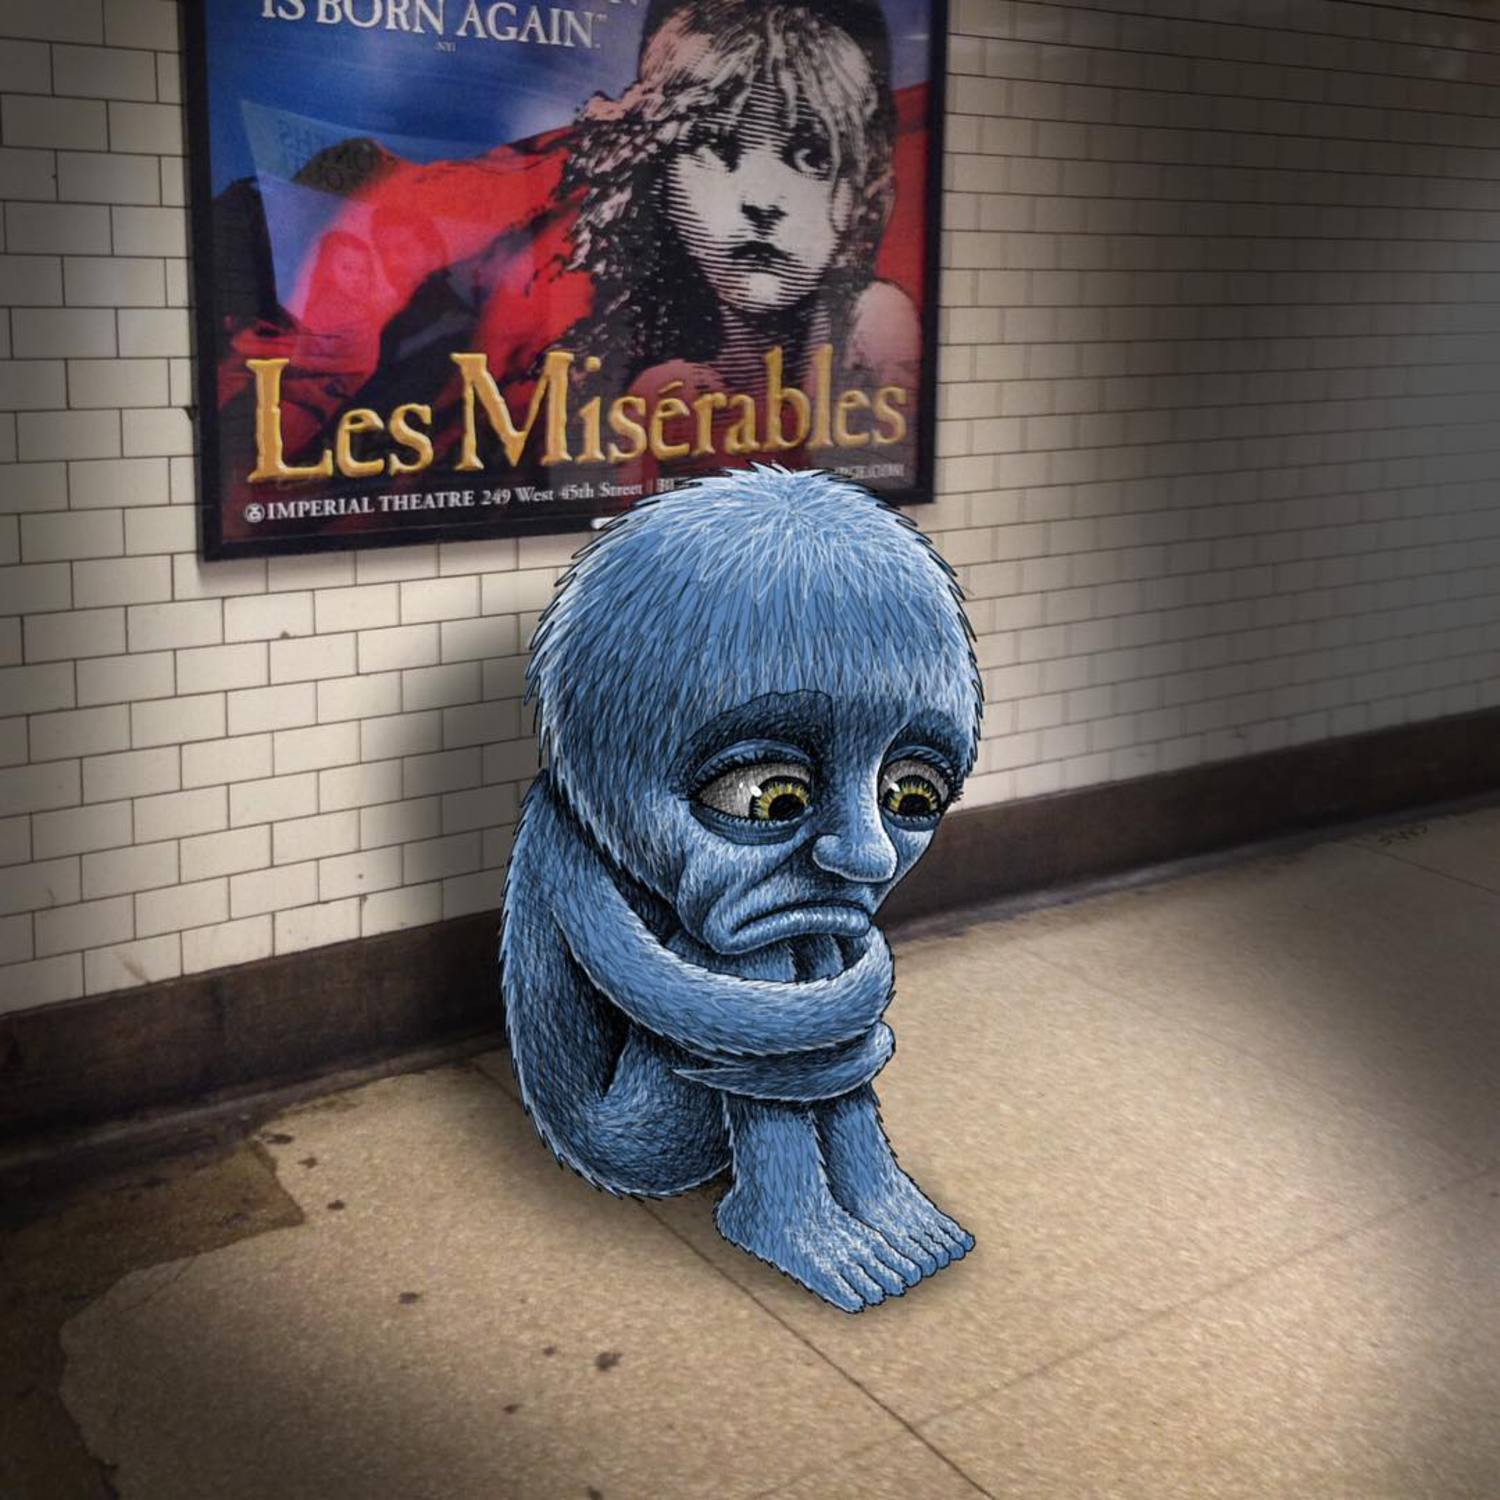 Monday. Les Miserables. #subwaydoodle #subway #doodle #swd #monday #lesmiserables #actuallyimquitehappy